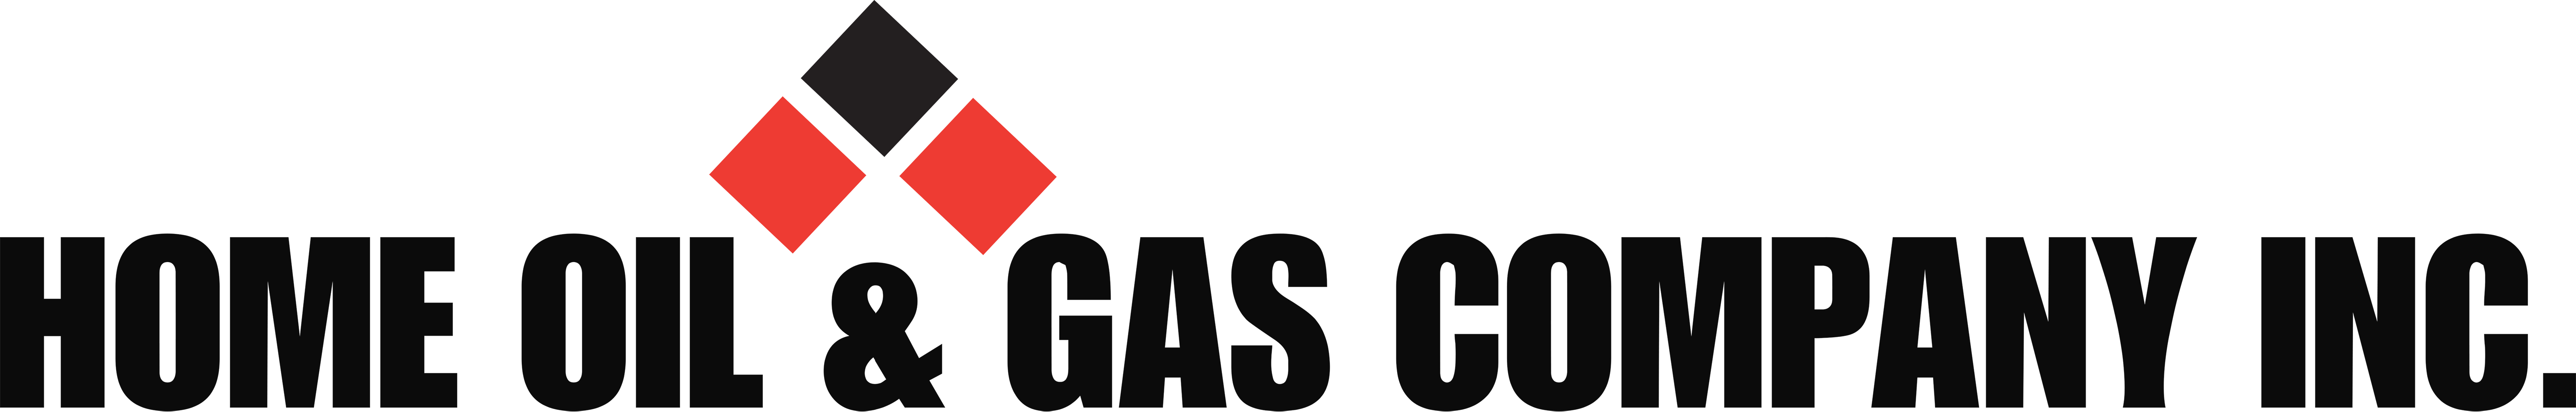 Home Oil & Gas Company, Inc